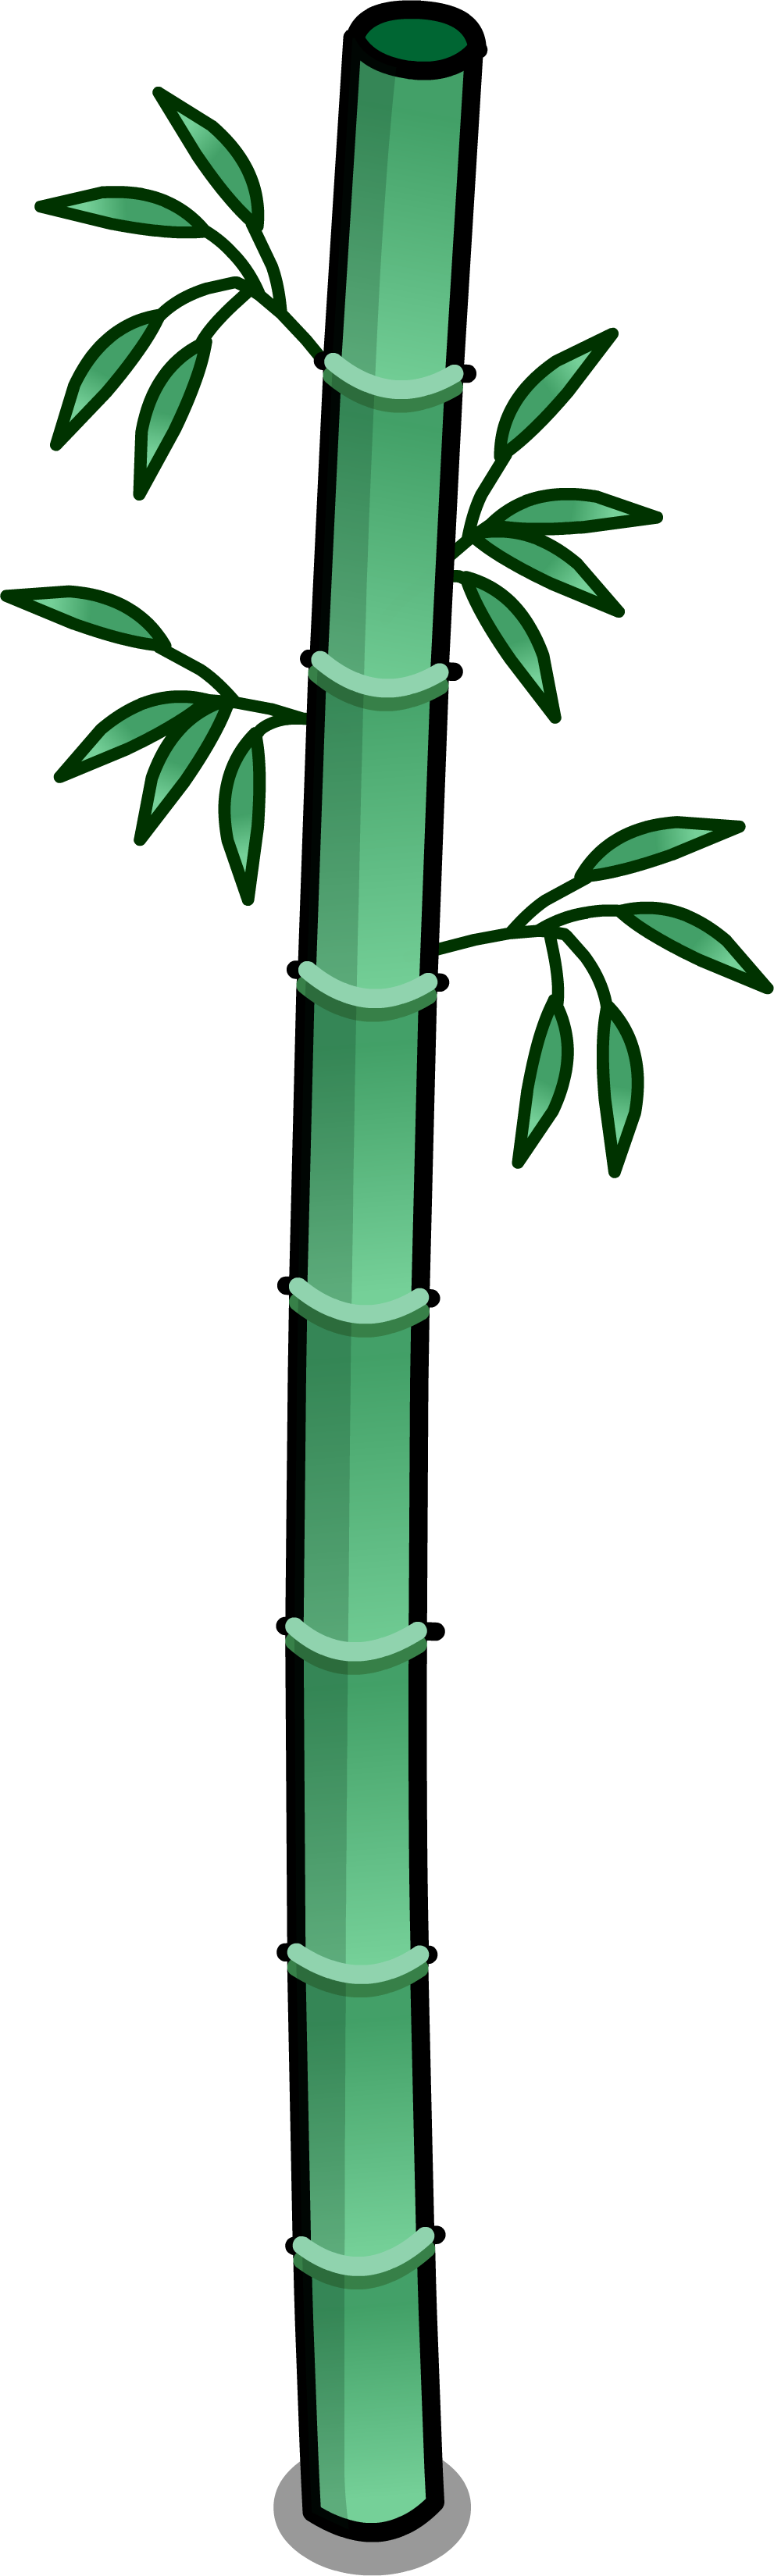 Bamboo clipart bamboo stalk. Image stalks sprite png